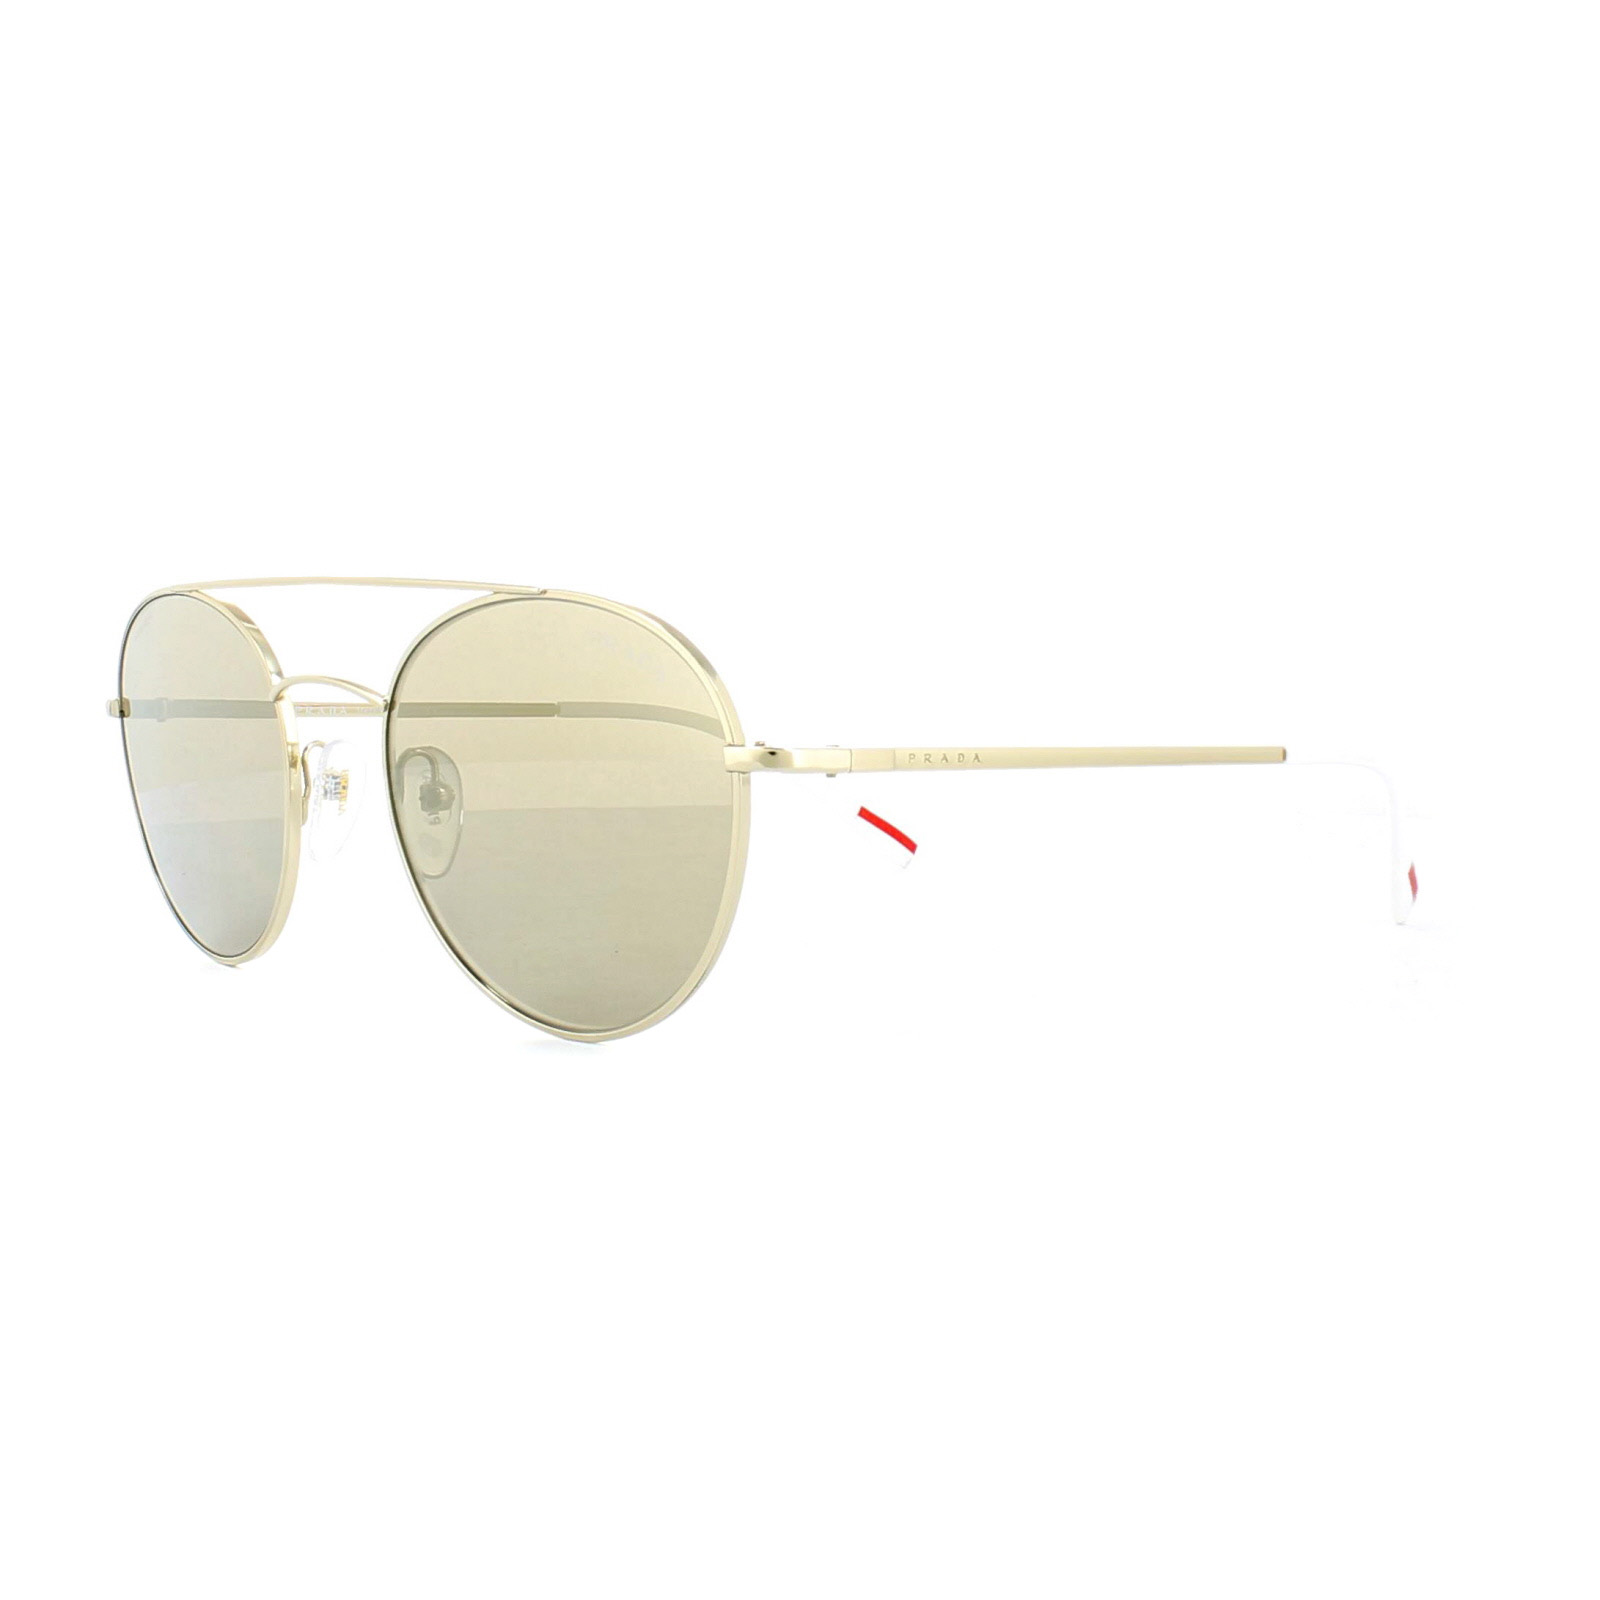 a495a67abe best price prada sunglasses discounted yellow 208db 6d344